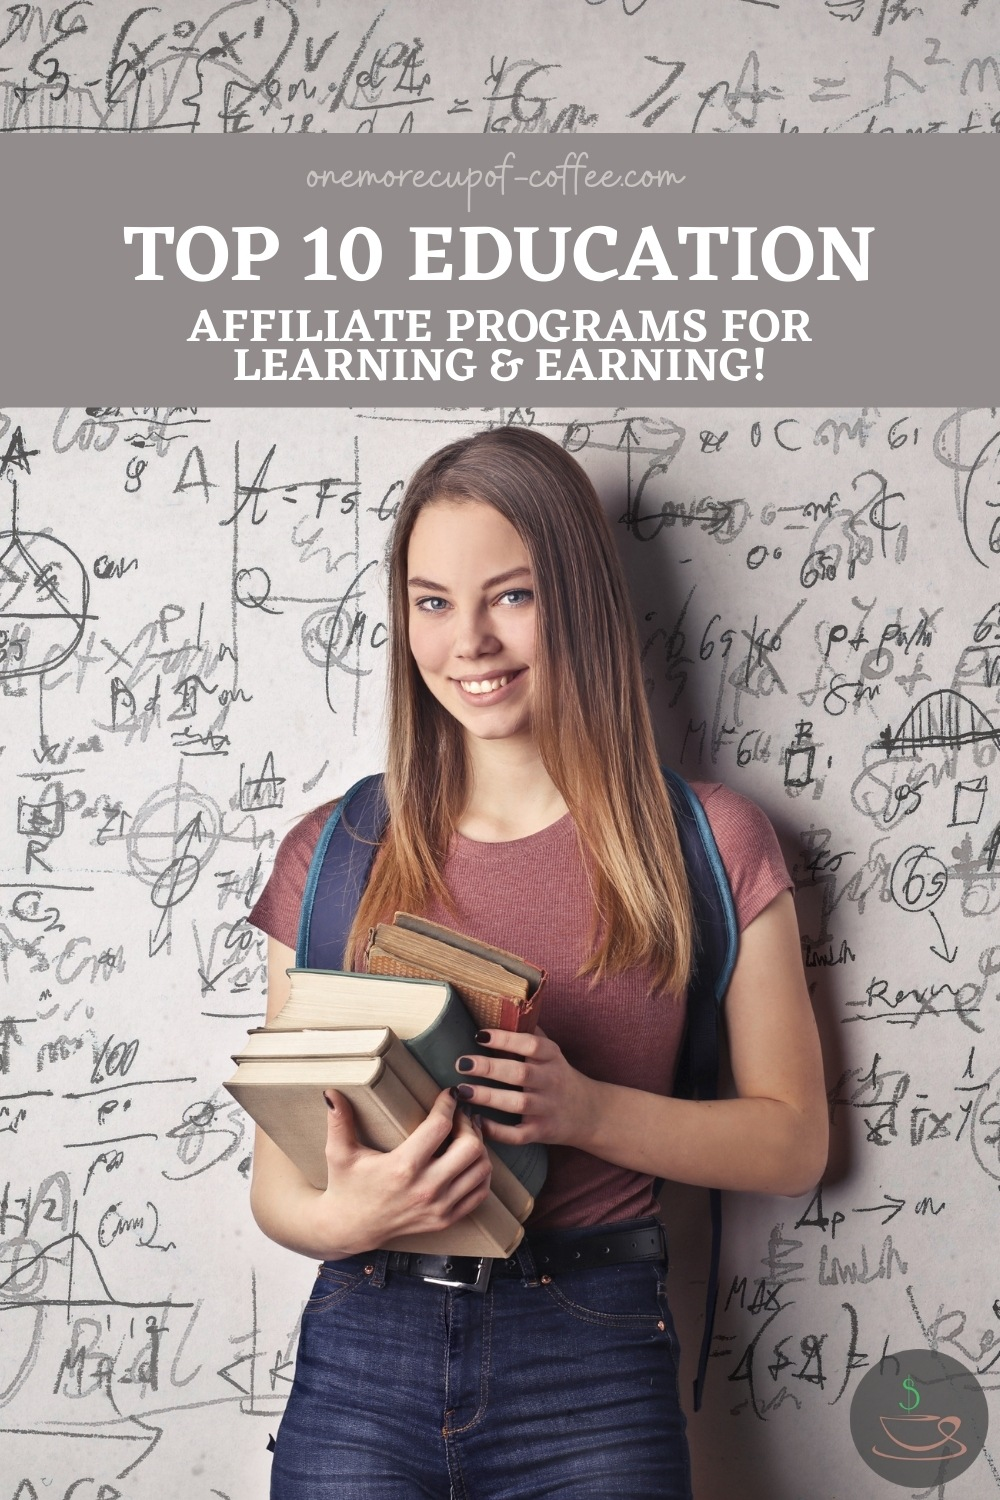 a smiling female student with books in her arms standing in front of a wall covered in mathematical equations; with text overlay